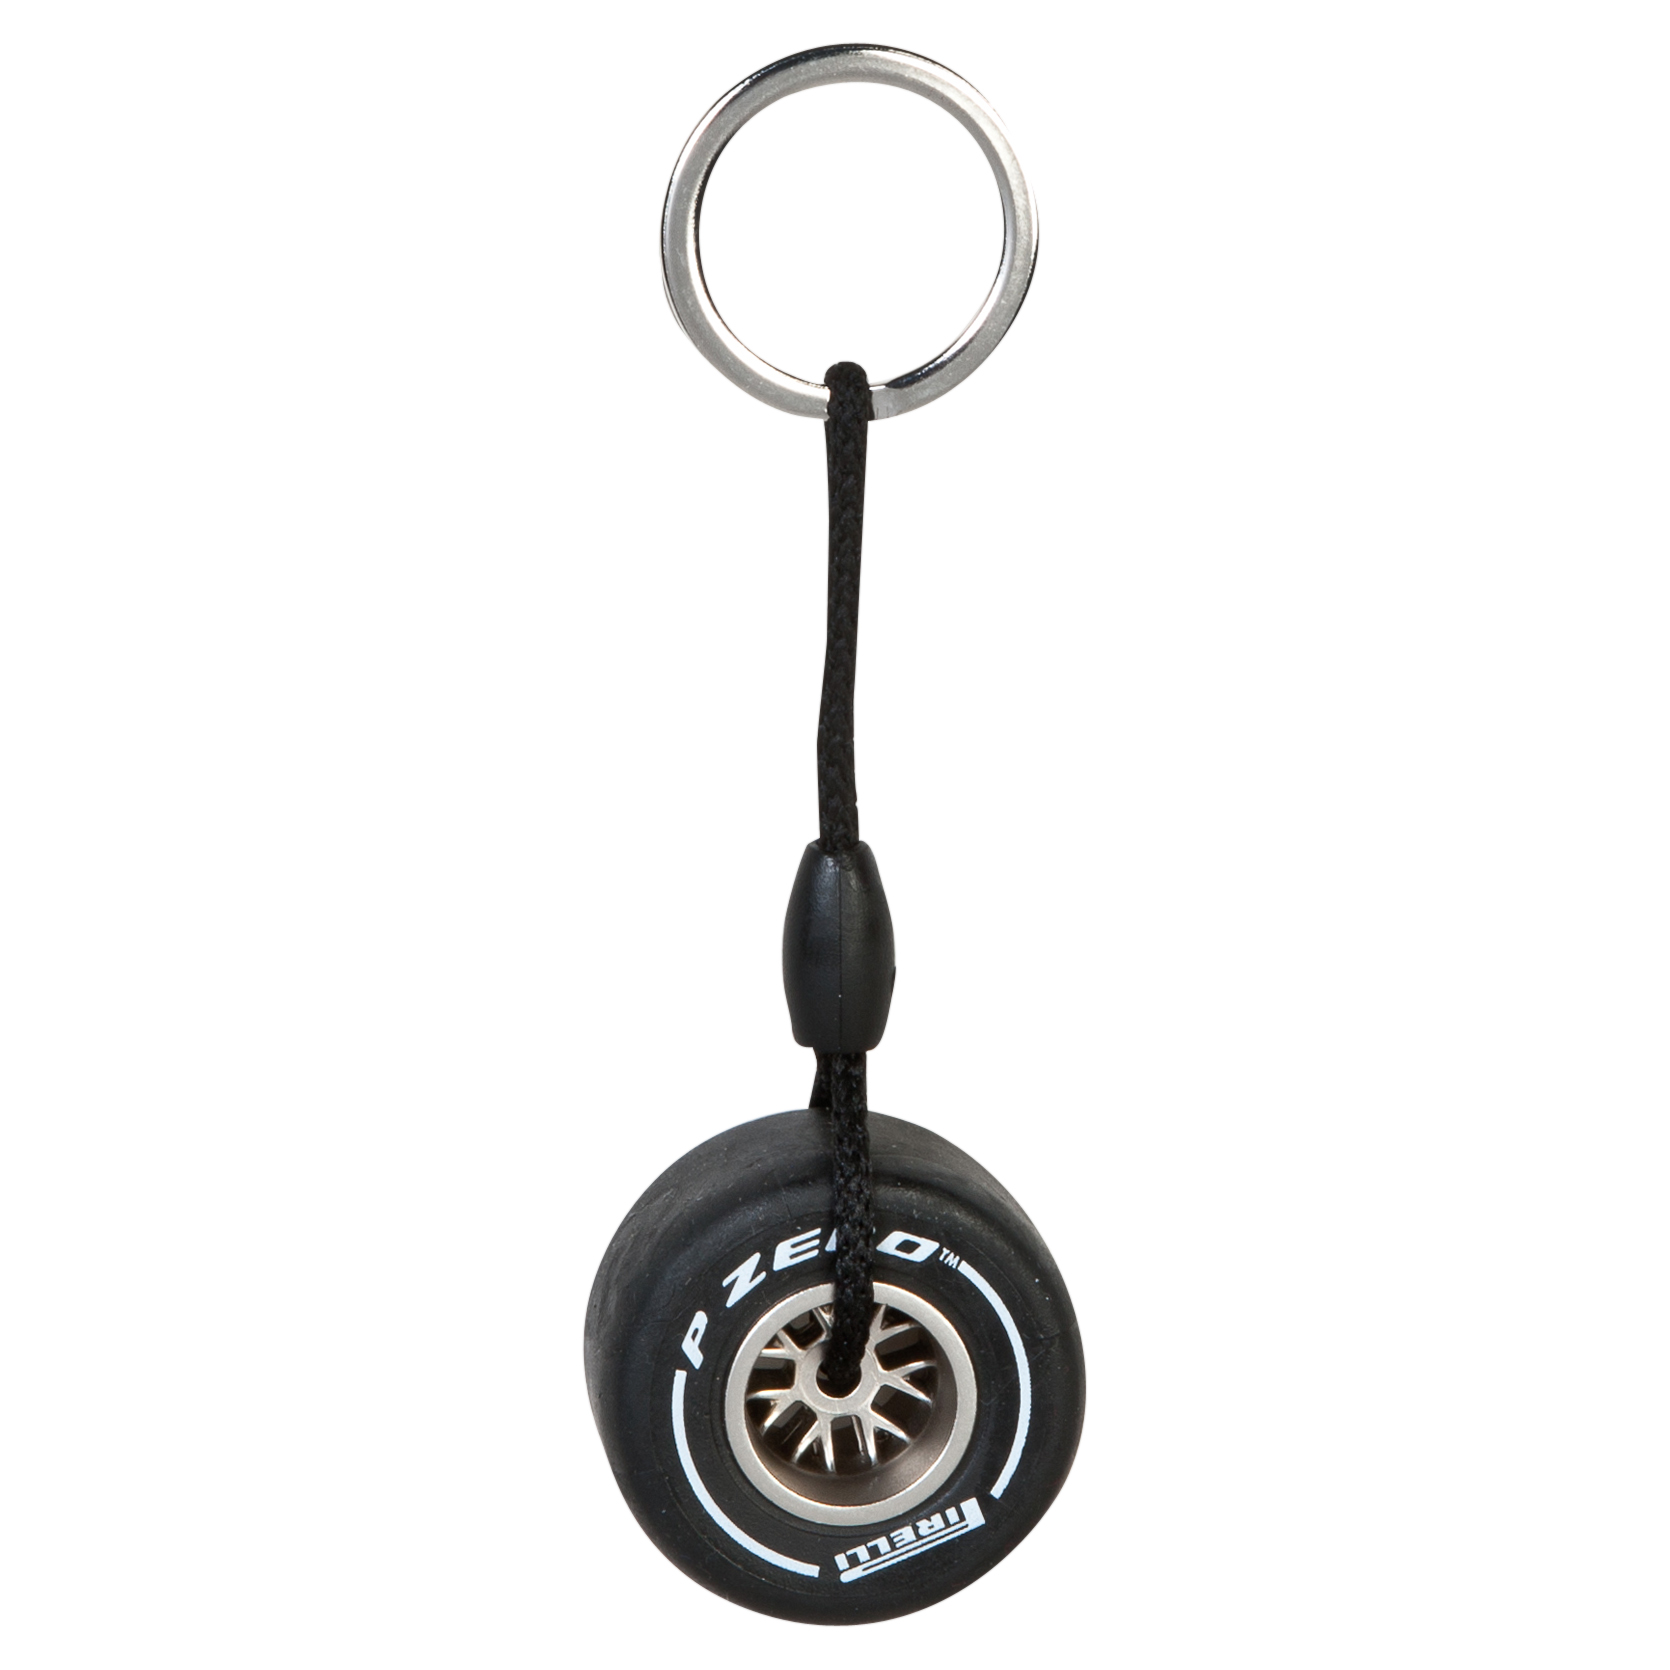 Pirelli Rim Tyre Key Ring - Medium White